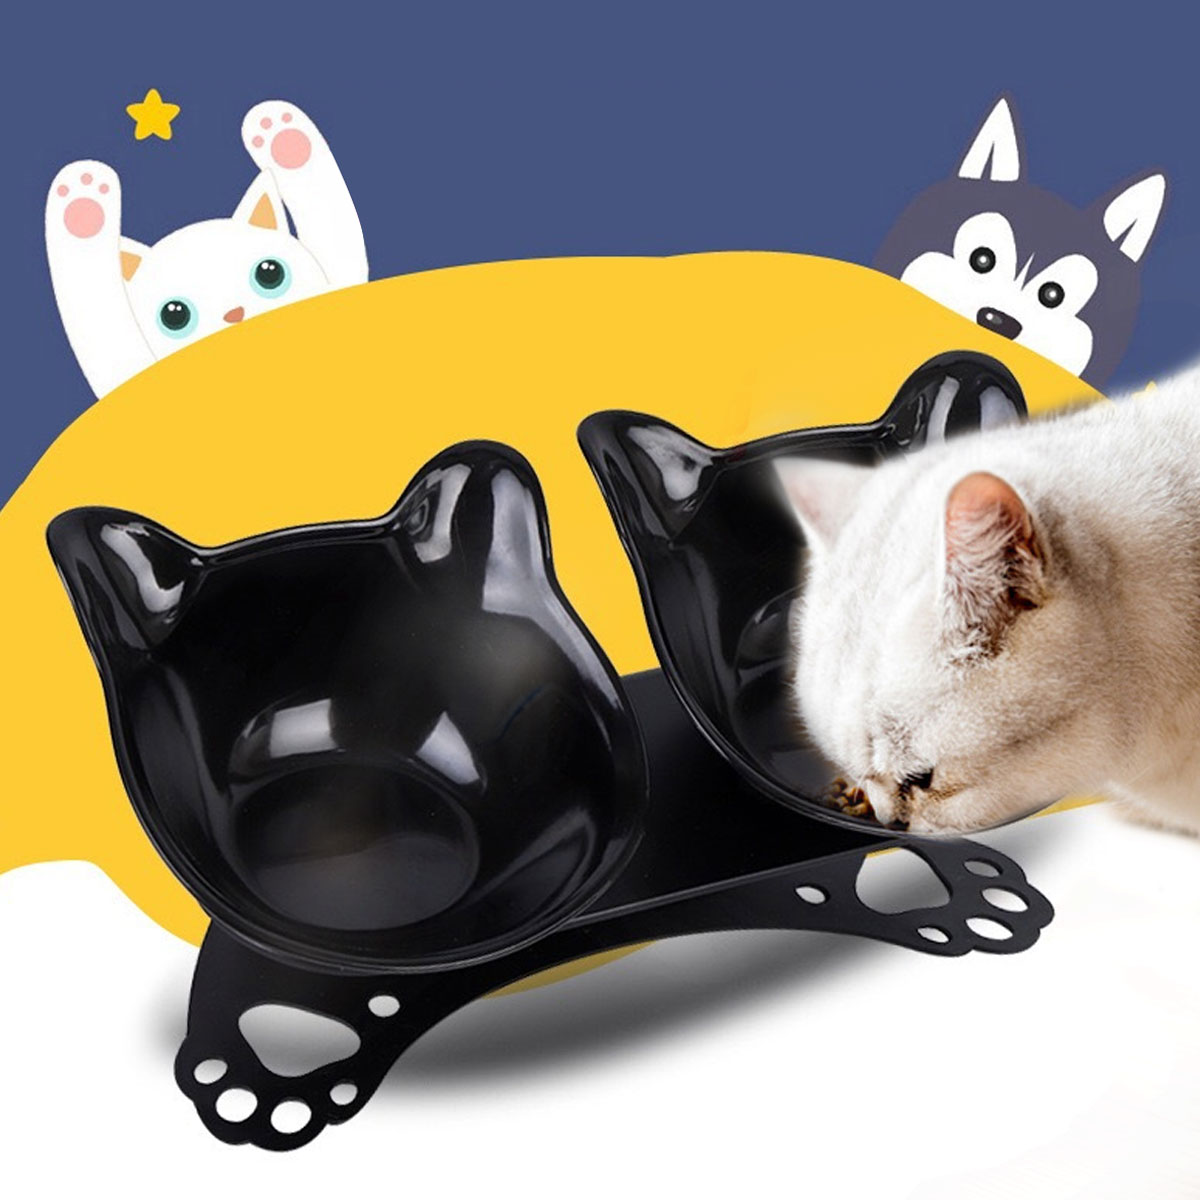 Non slip Cat Bowls Double Bowls With Raised Stand Pet Food And Water Bowls For Cats Dogs Feeders Cat Bowl Pet Supplies 1